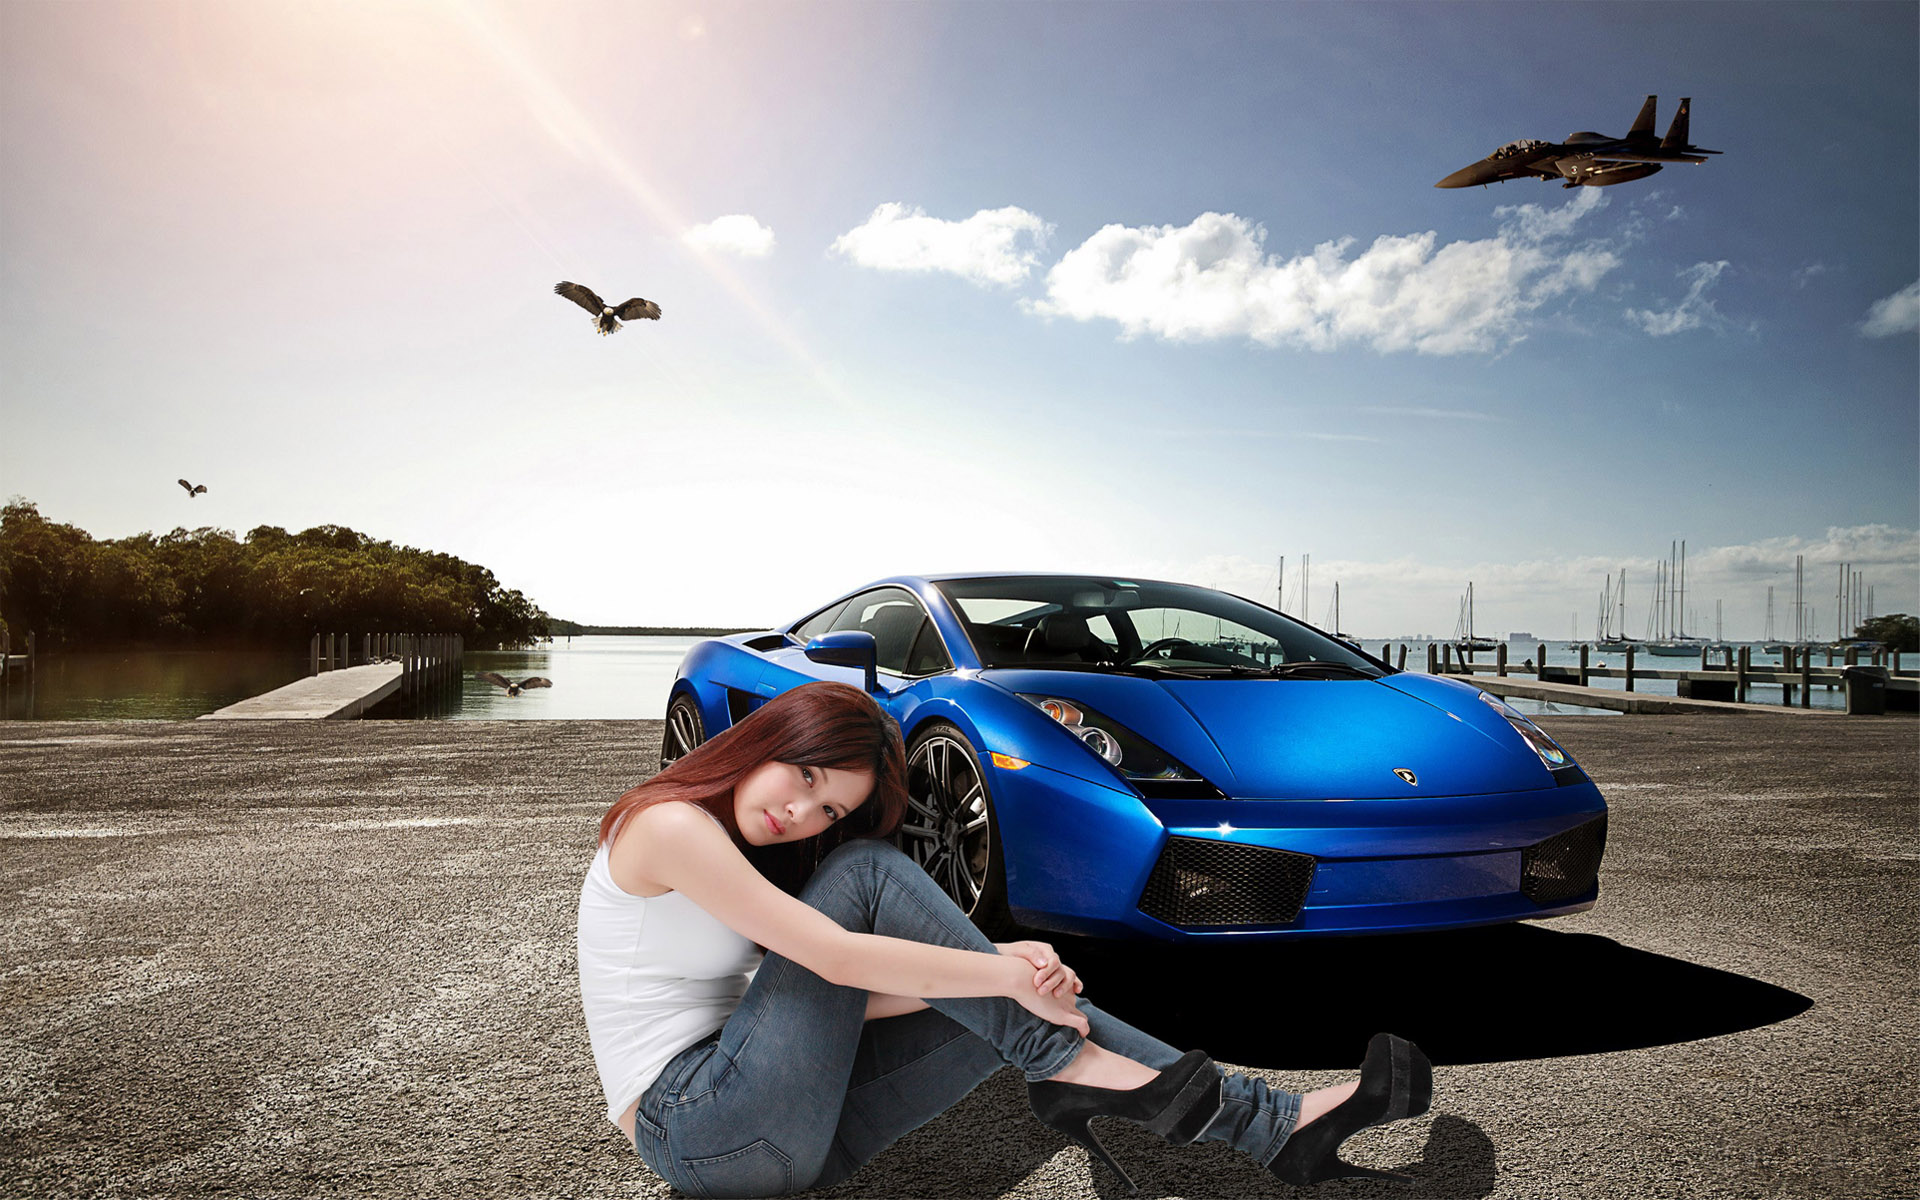 car and girl creative wallpape wallpapers | car and girl ...